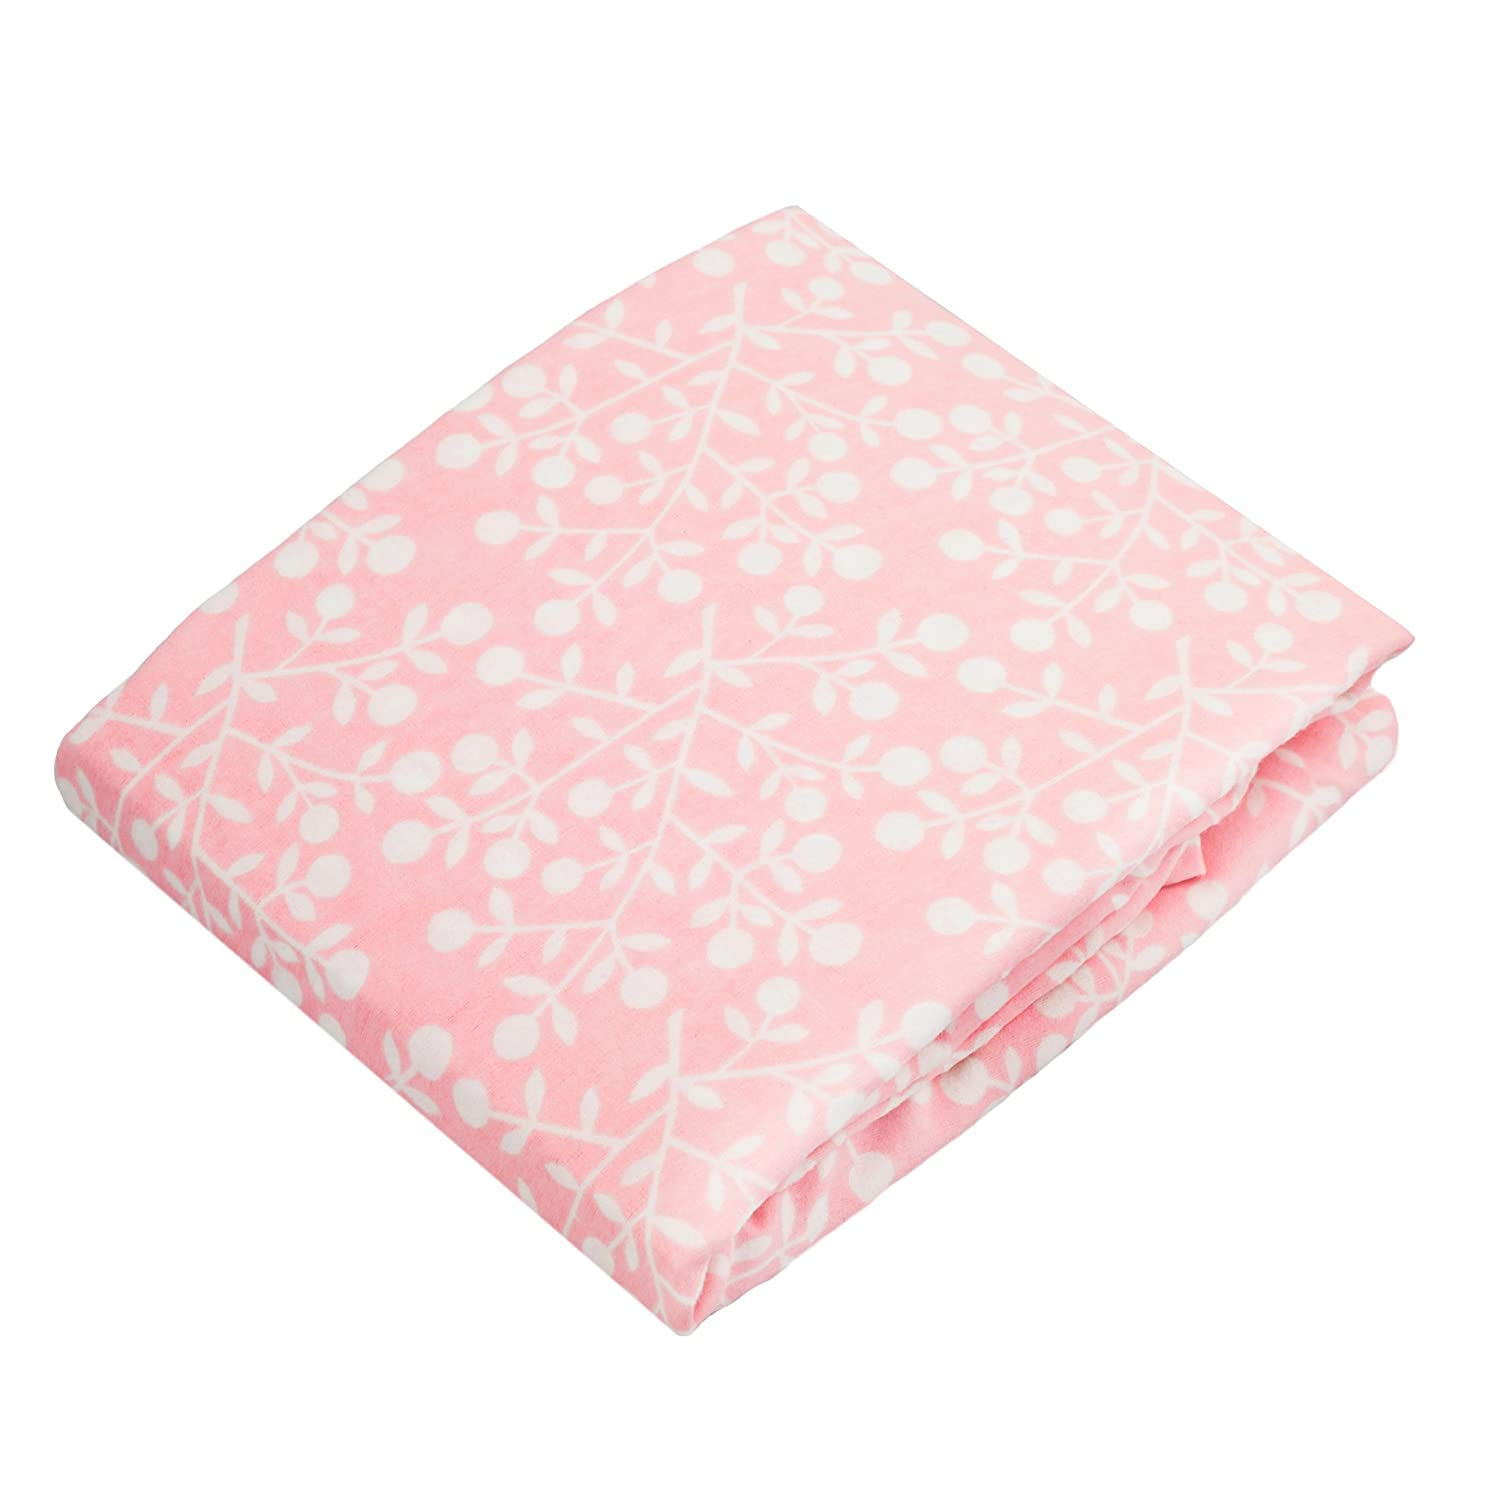 Kushies Crib Sheet Pink Lattice Made in Canada Soft 100/% Breathable Cotton Flannel